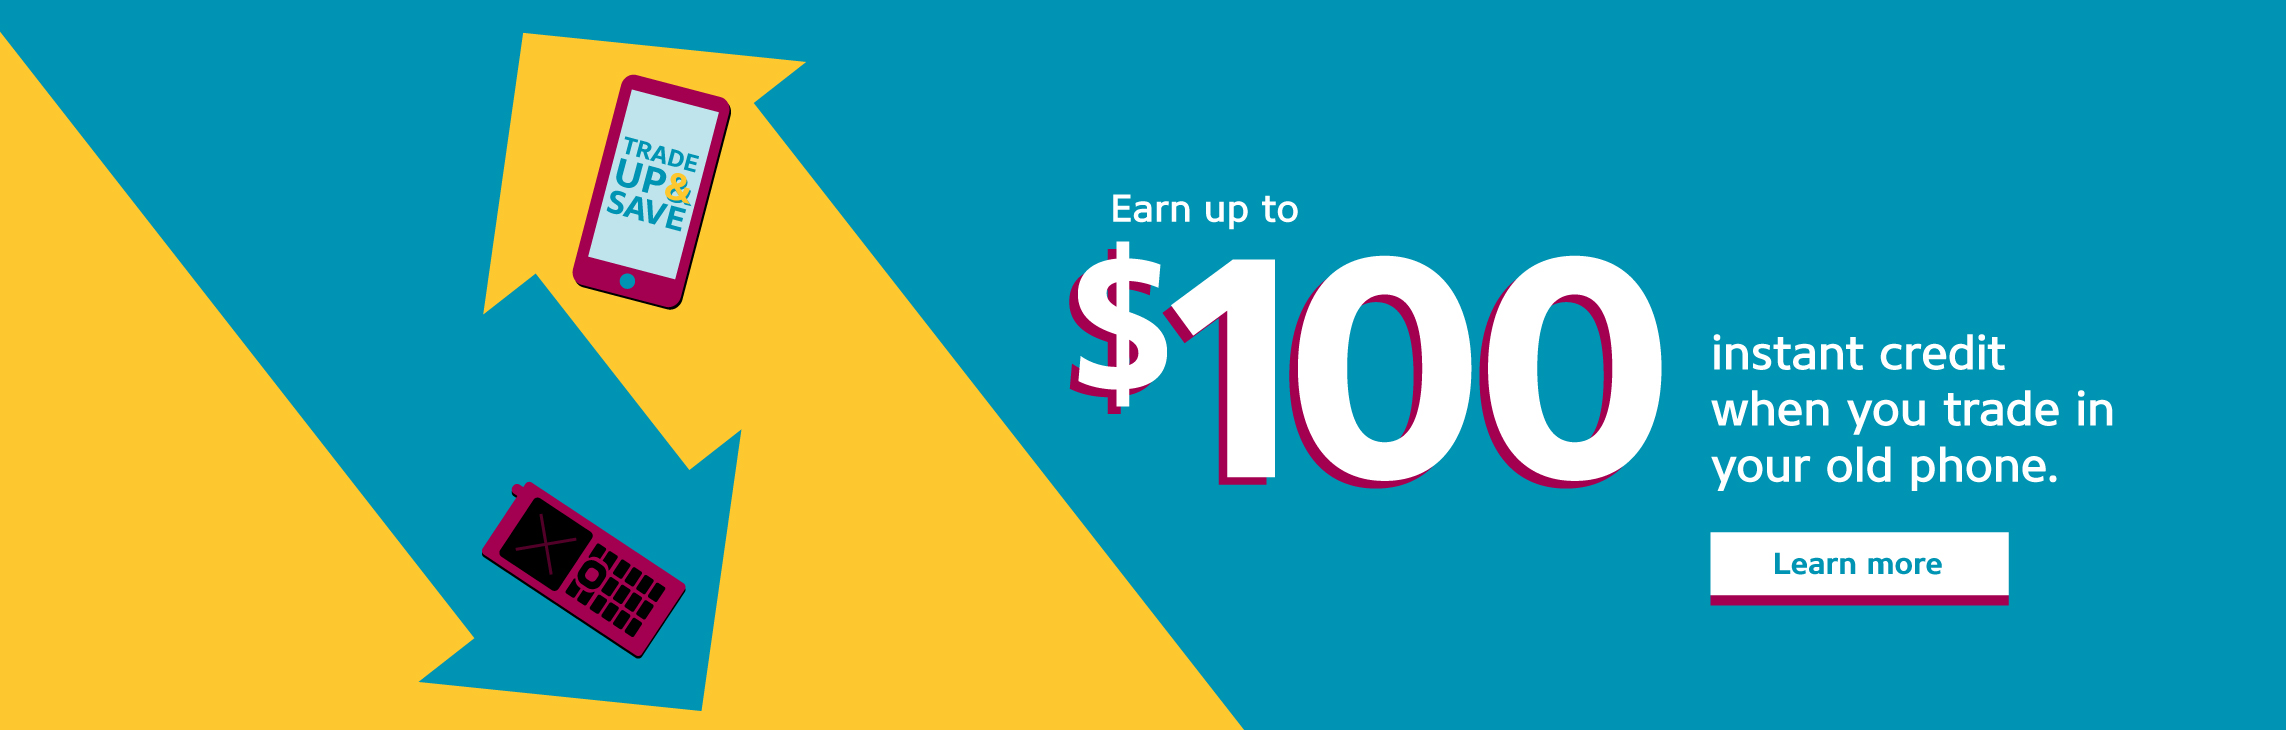 Earn up to $100 instant credit when you trade in your old phone.